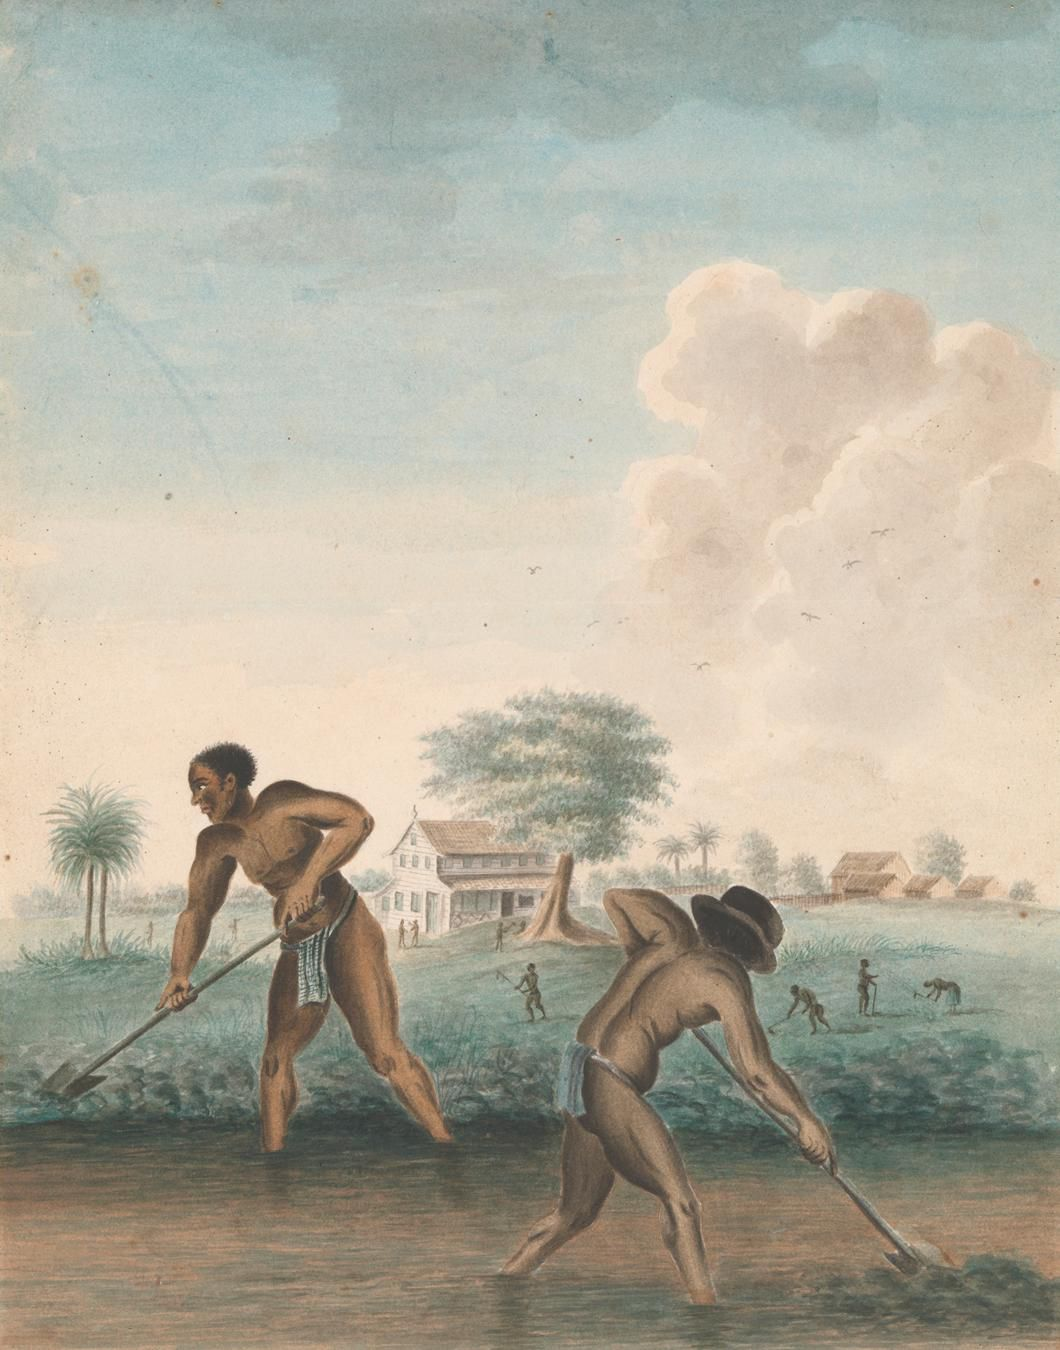 Confronting the Netherlands' Role in the Brutal History of Slavery